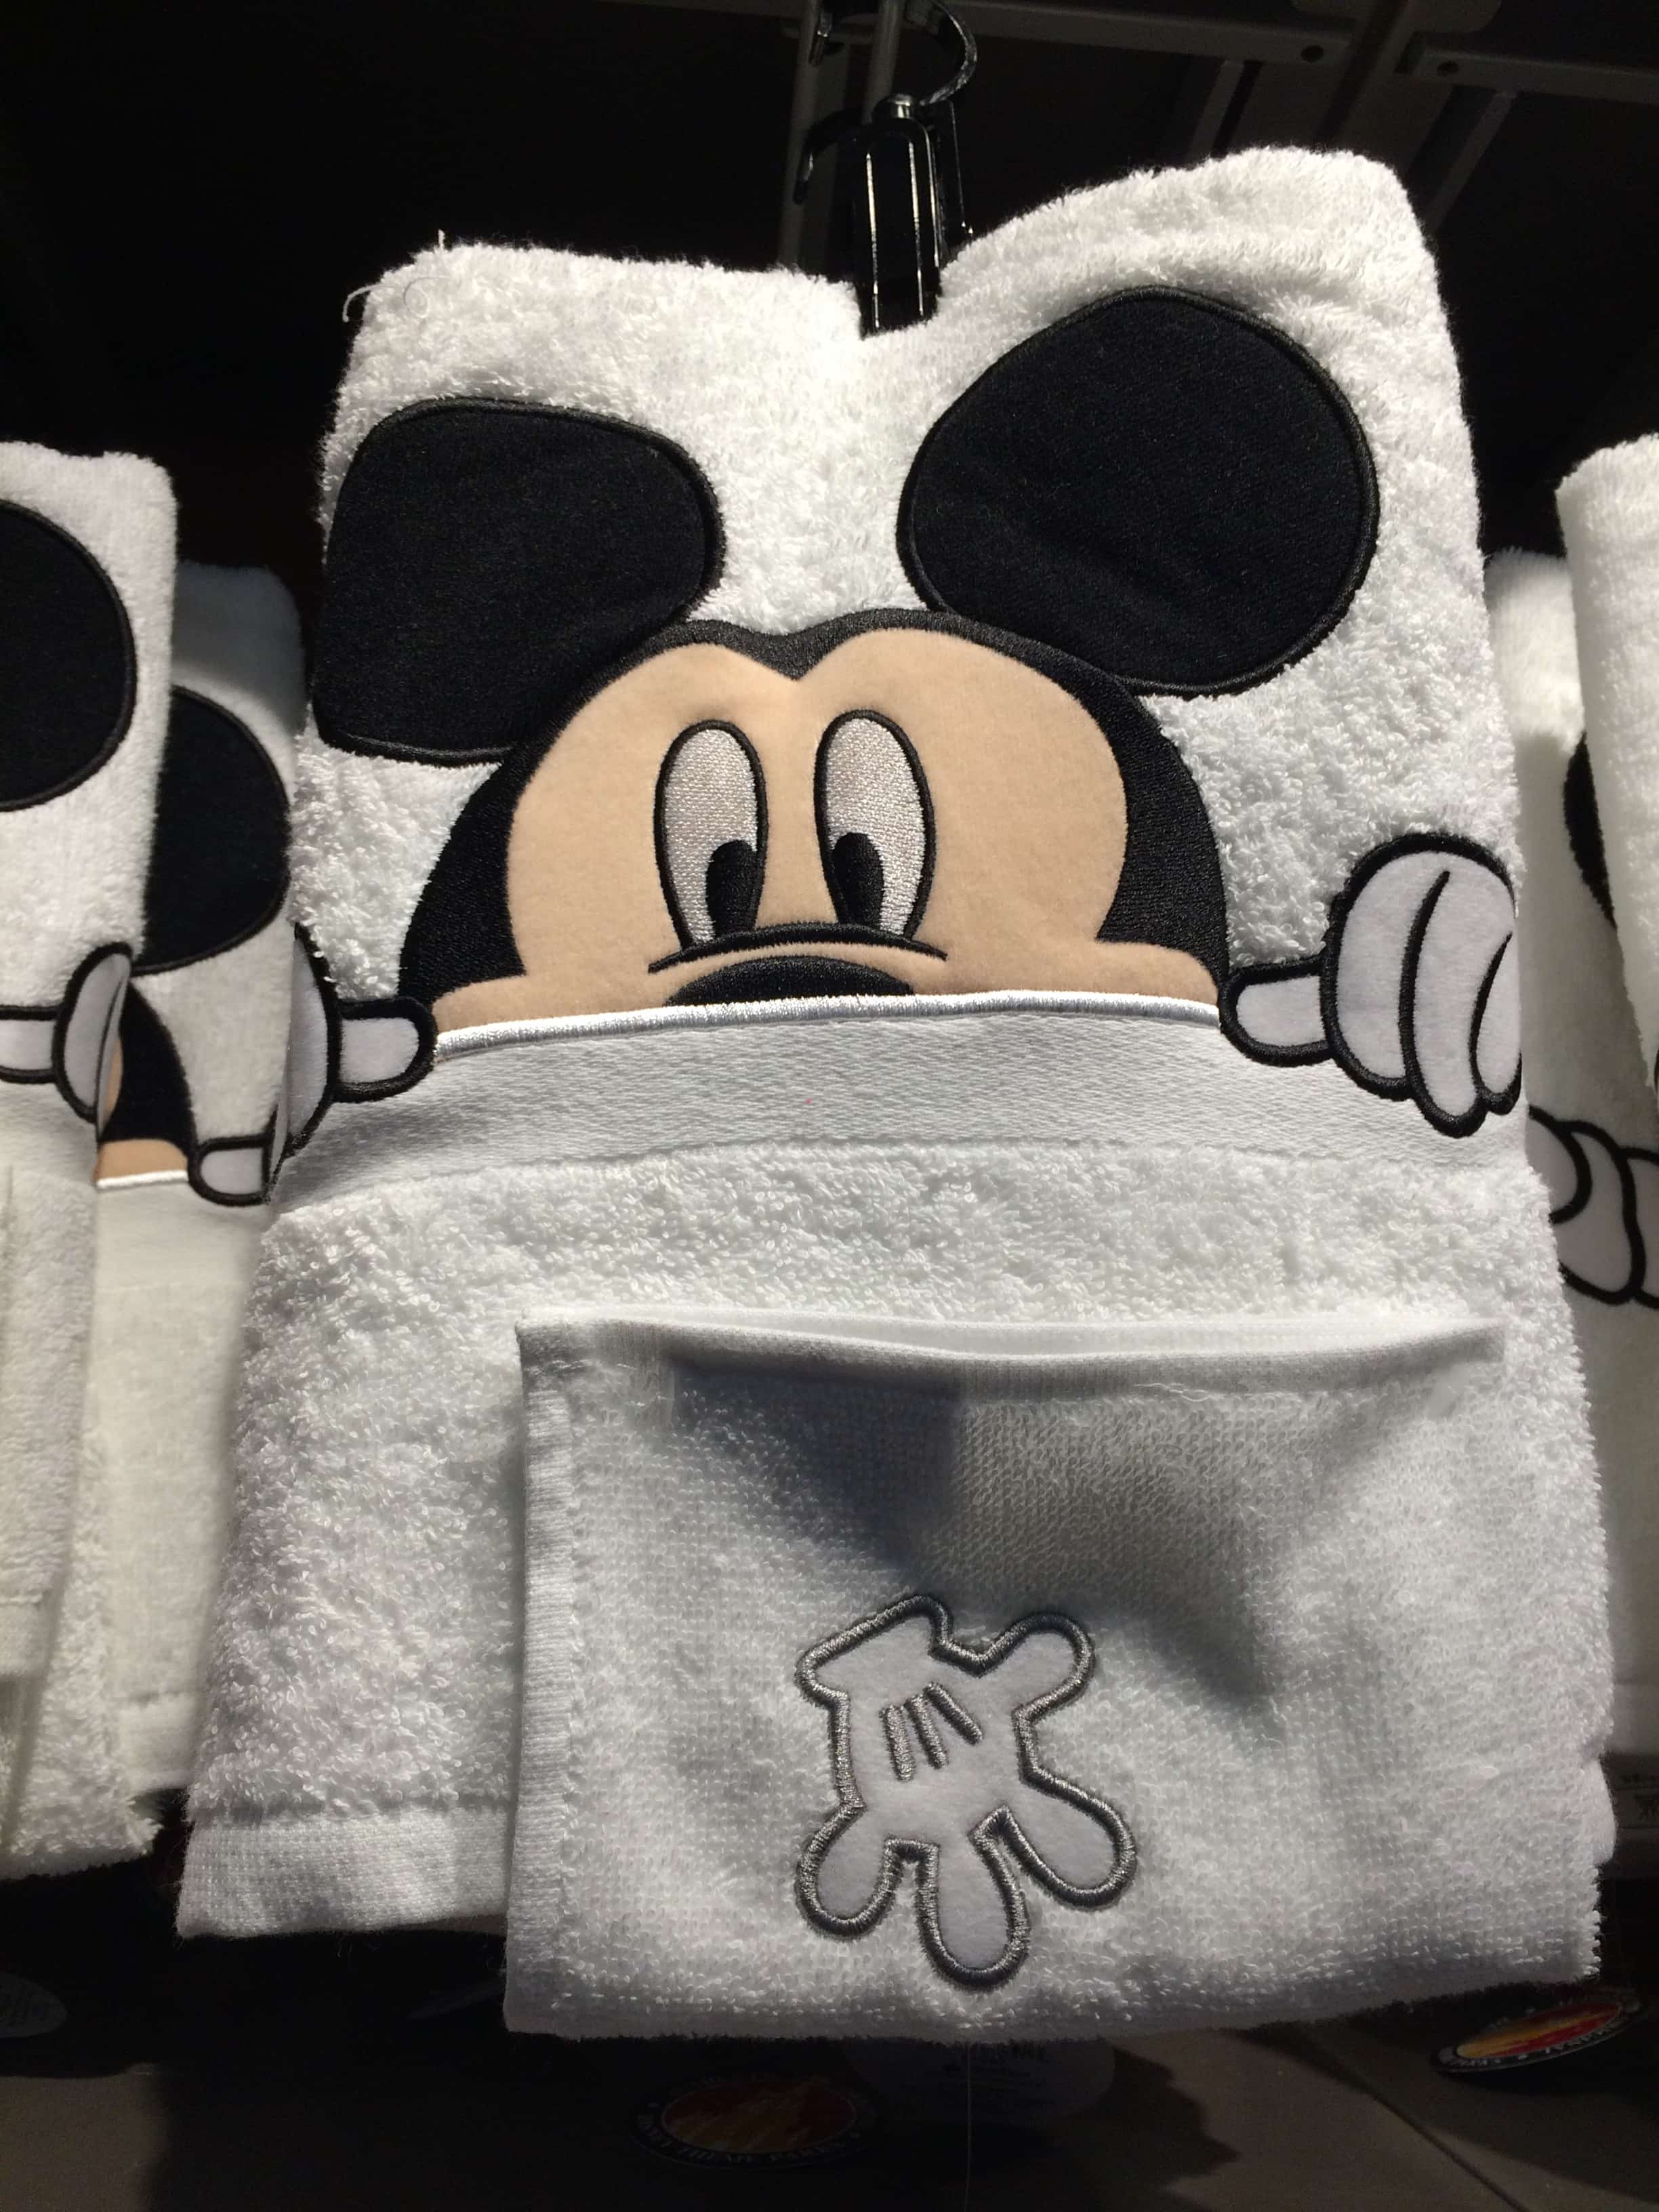 Disney Bathroom Accessories Found At Walt Disney World Resort - Mickey mouse bathroom accessories